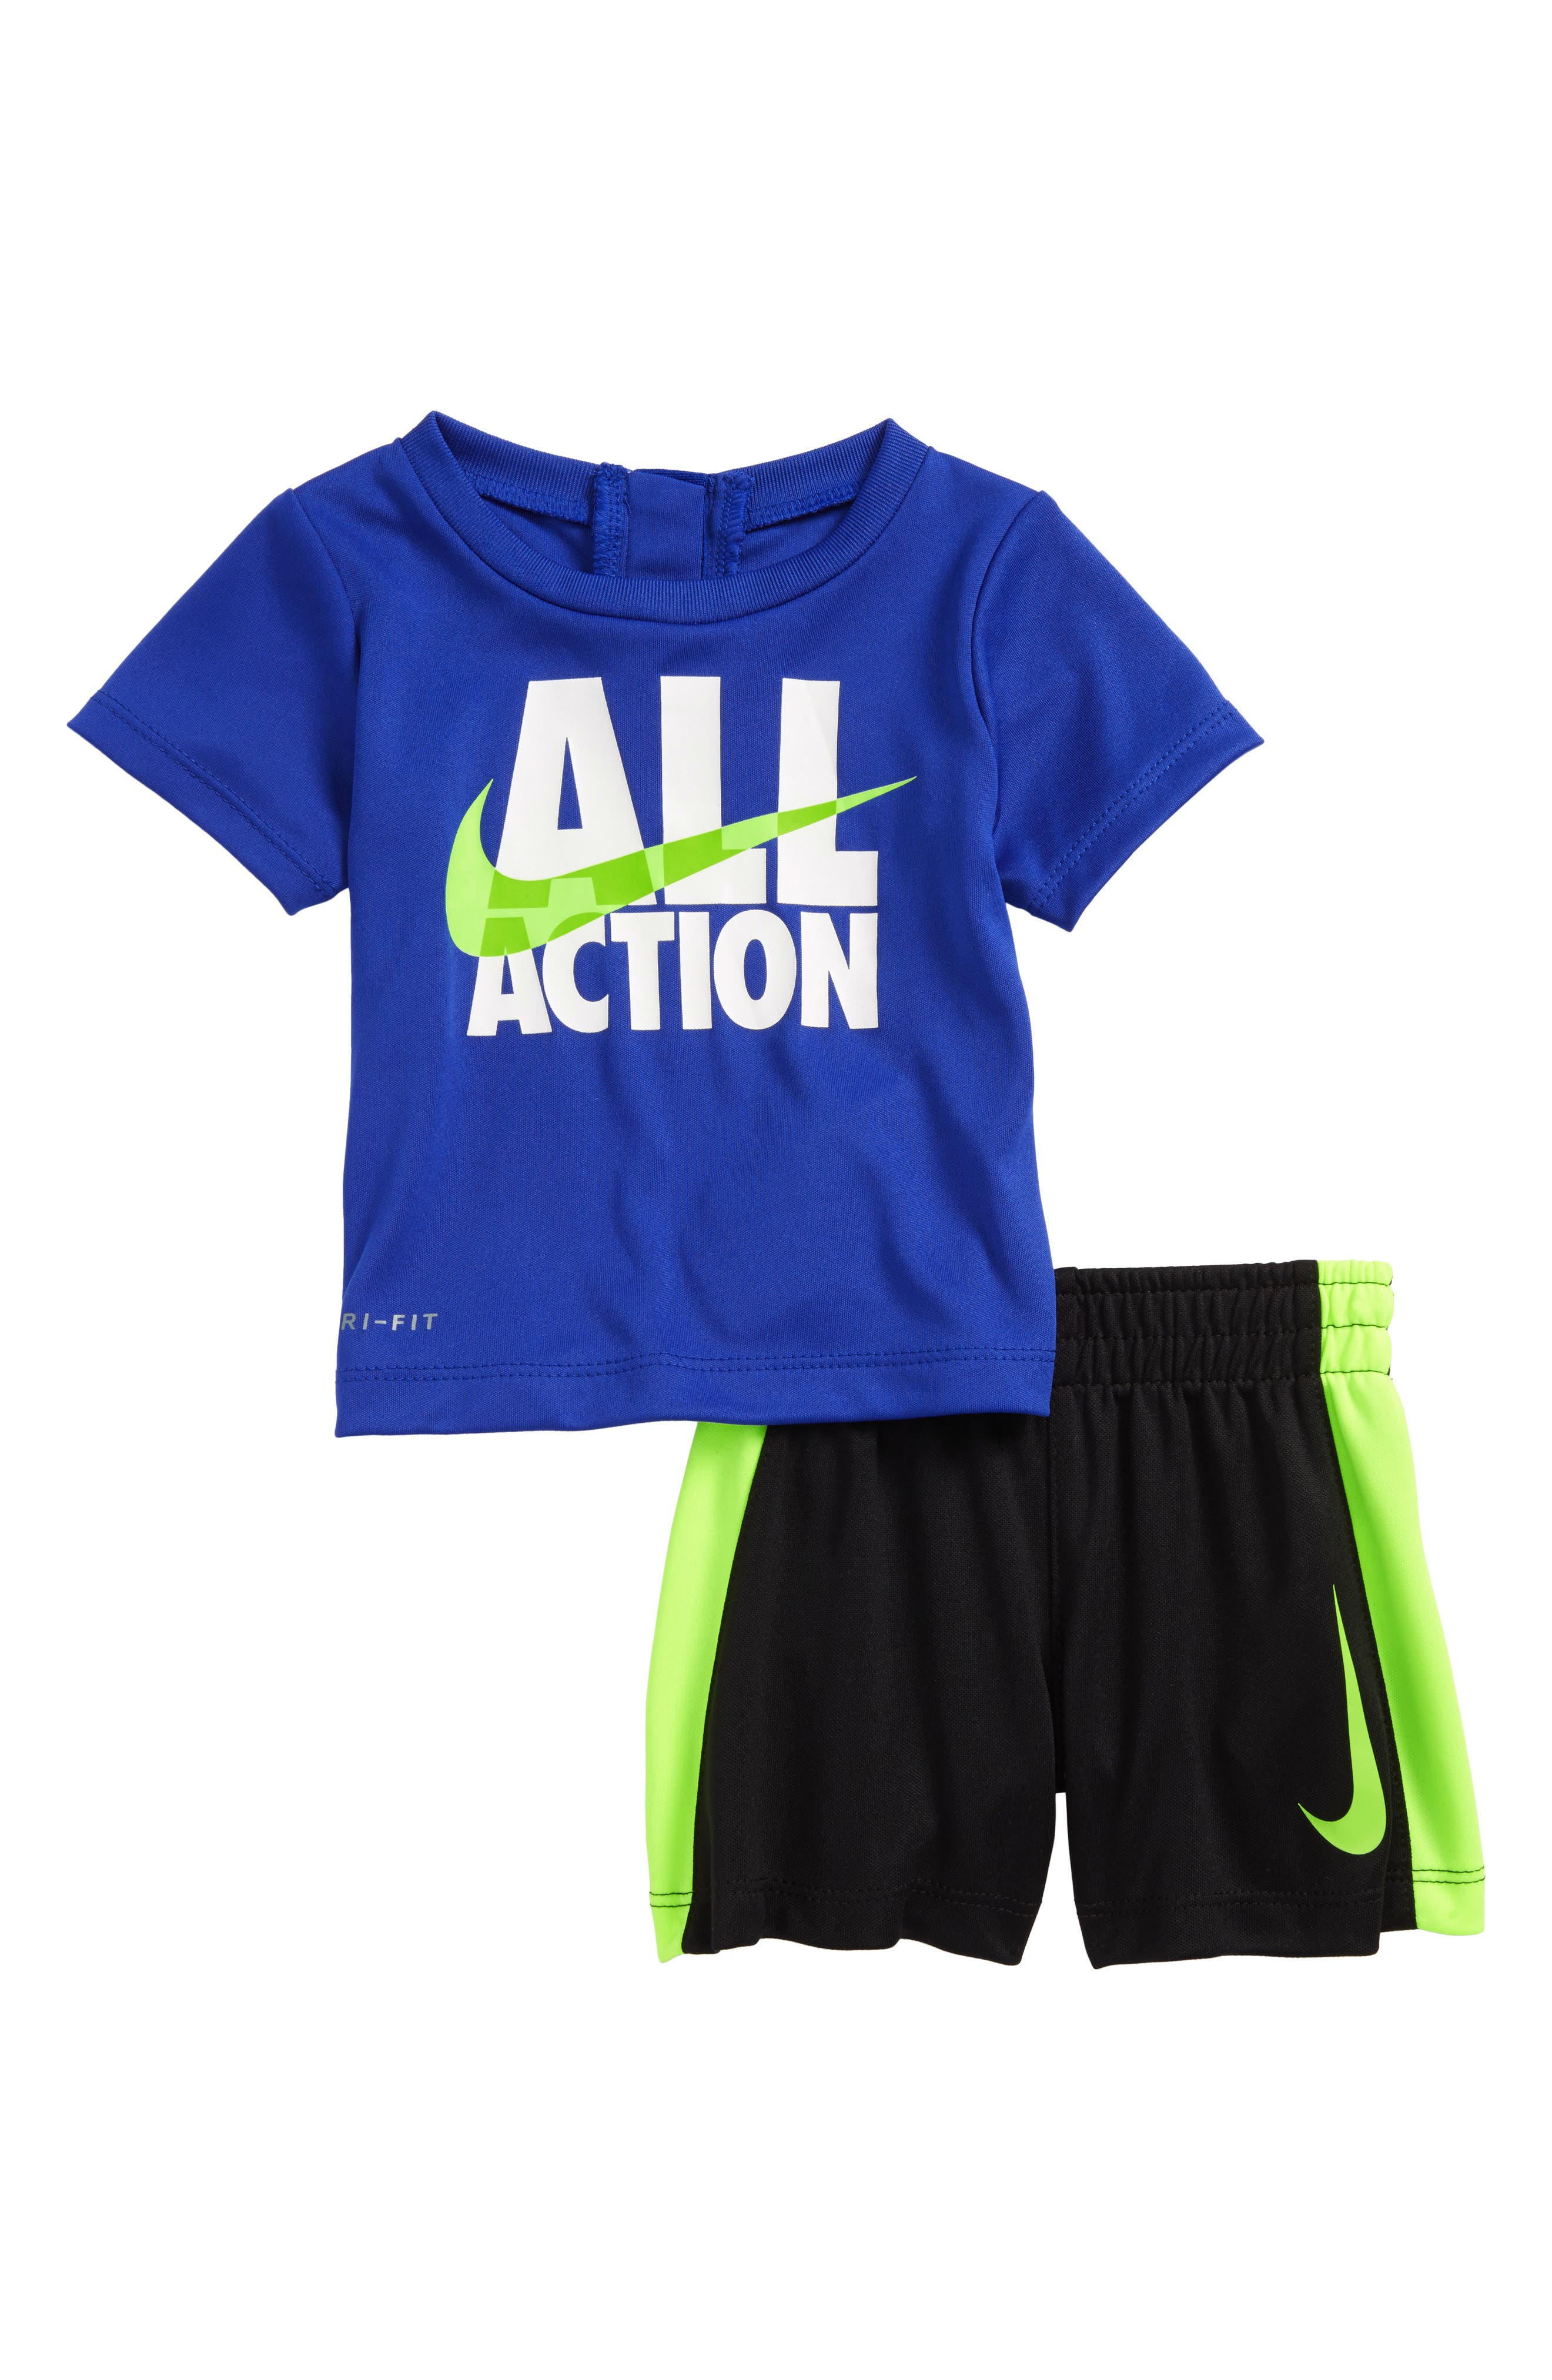 All Action Dry T-Shirt & Shorts Set,                             Main thumbnail 1, color,                             434